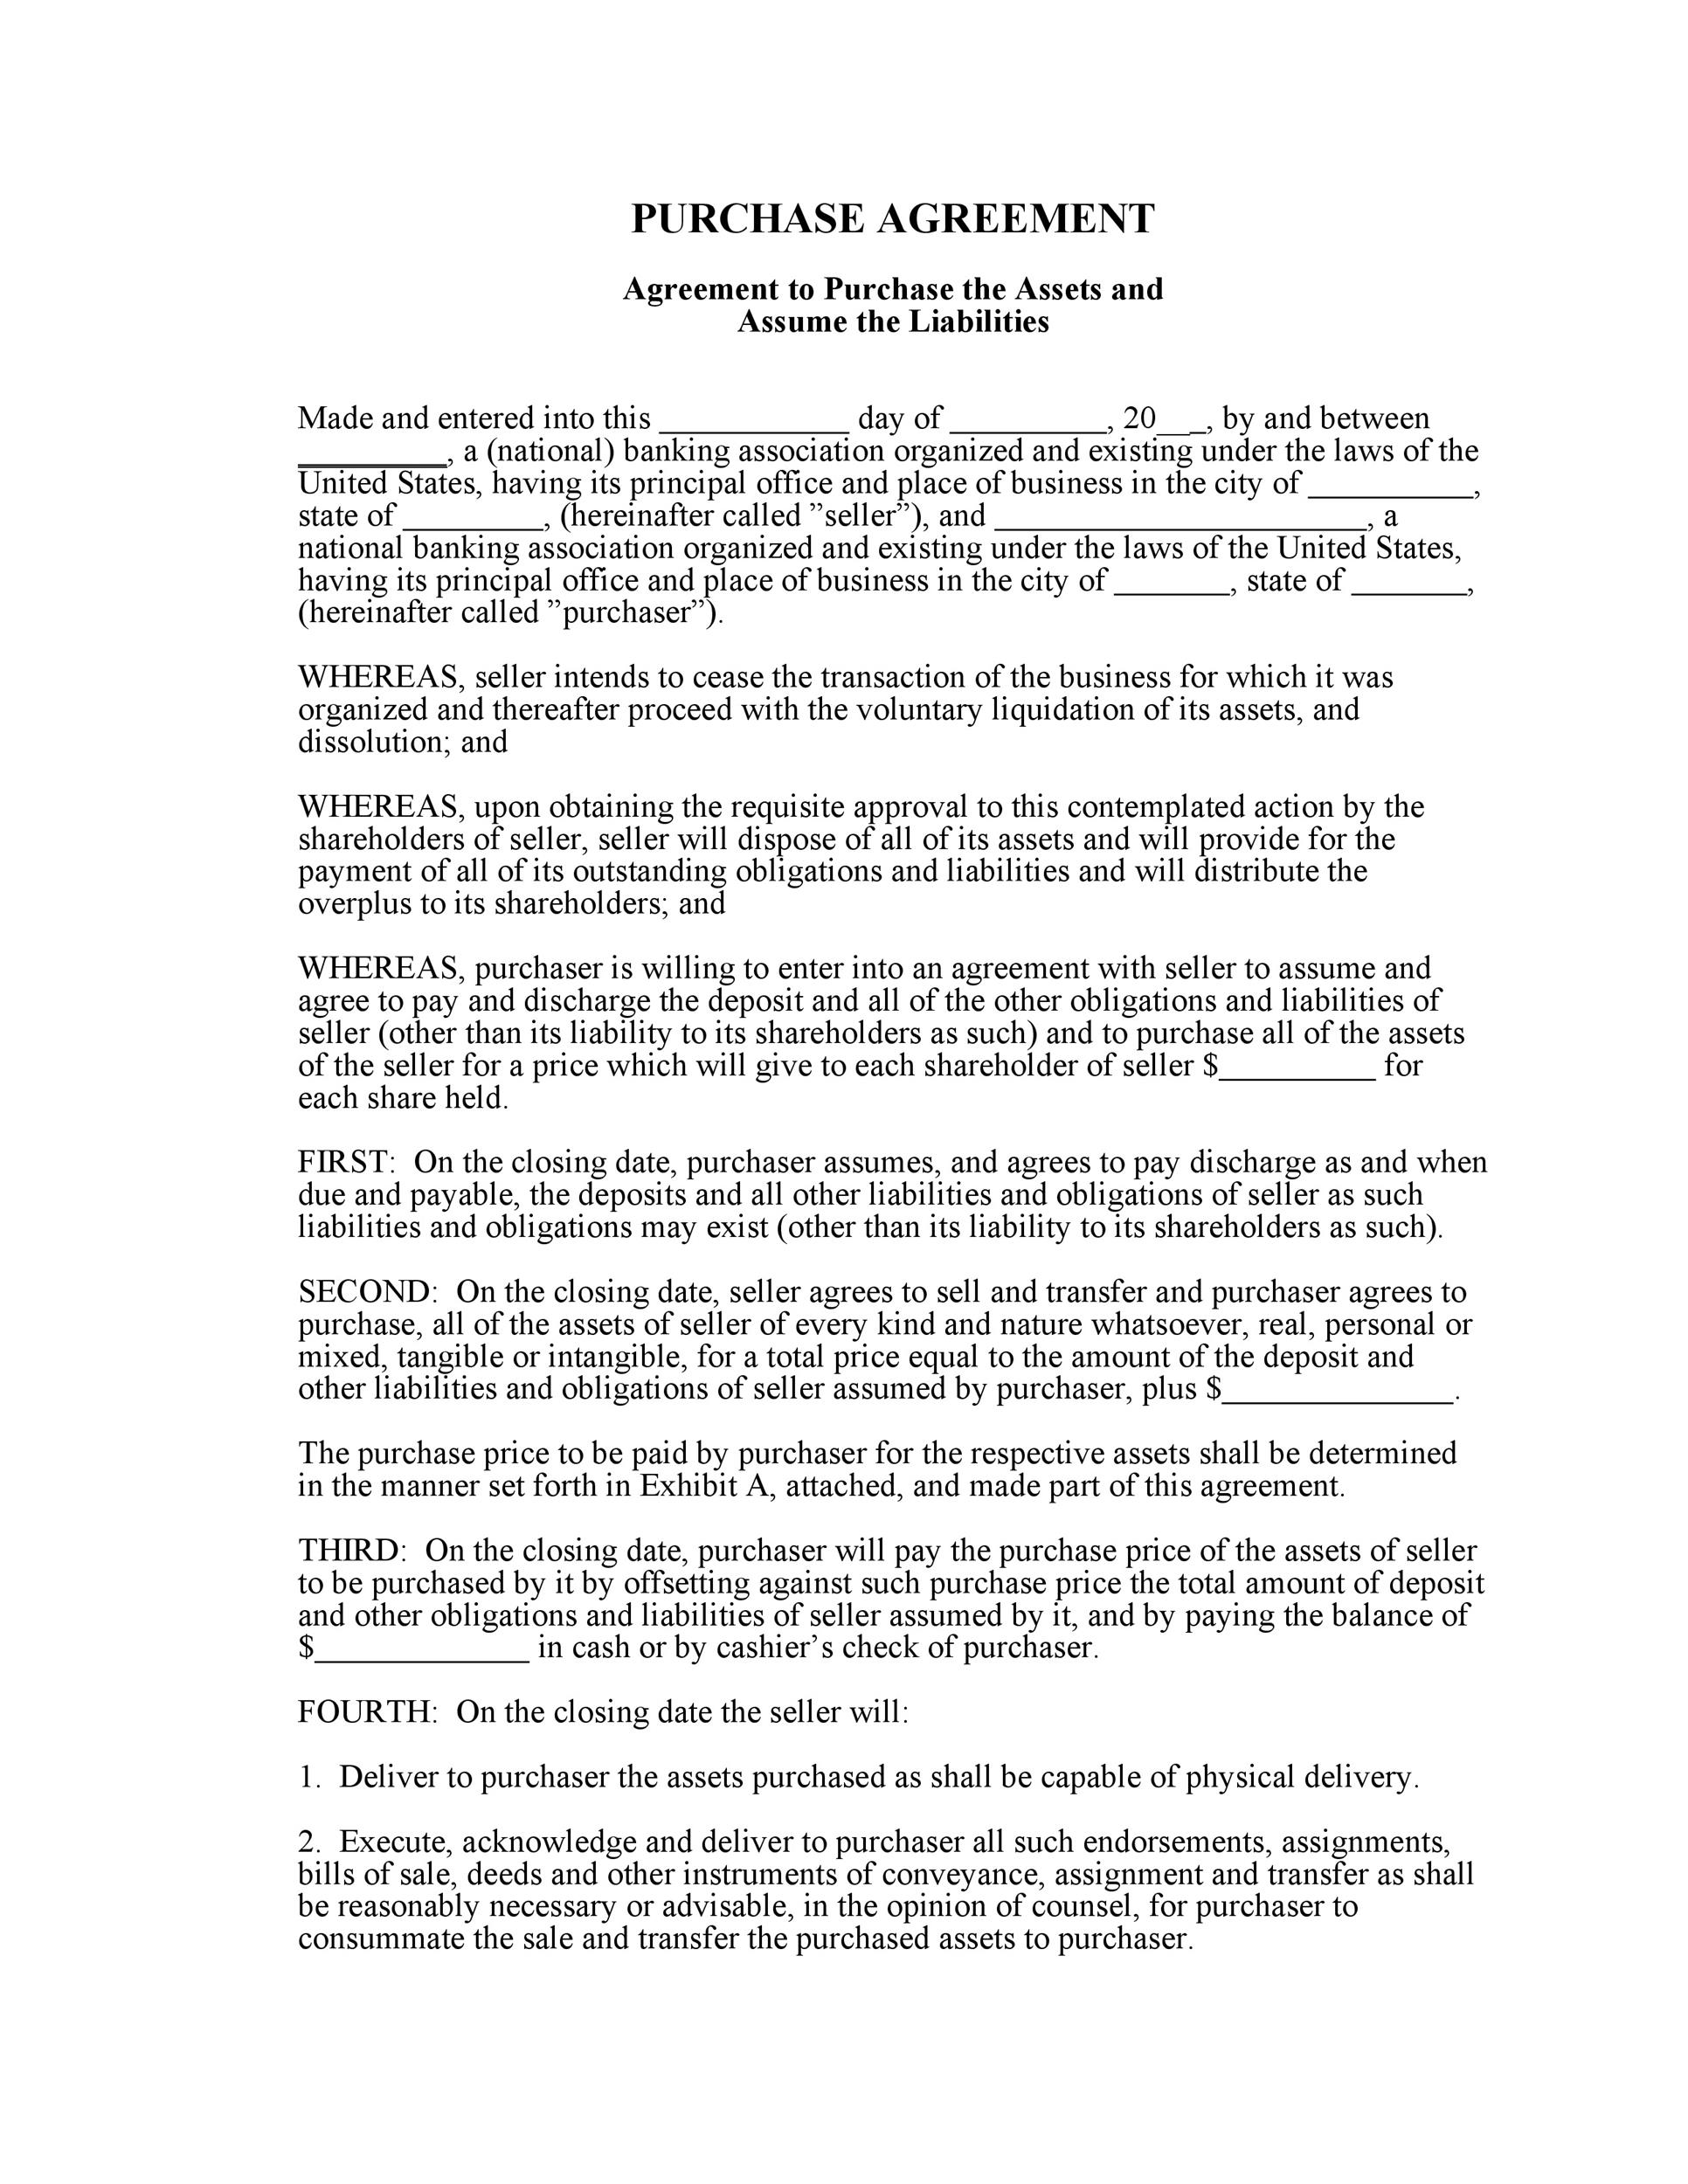 Assignment Agreement Template Agile Web Design Development – Purchase Agreement Sample